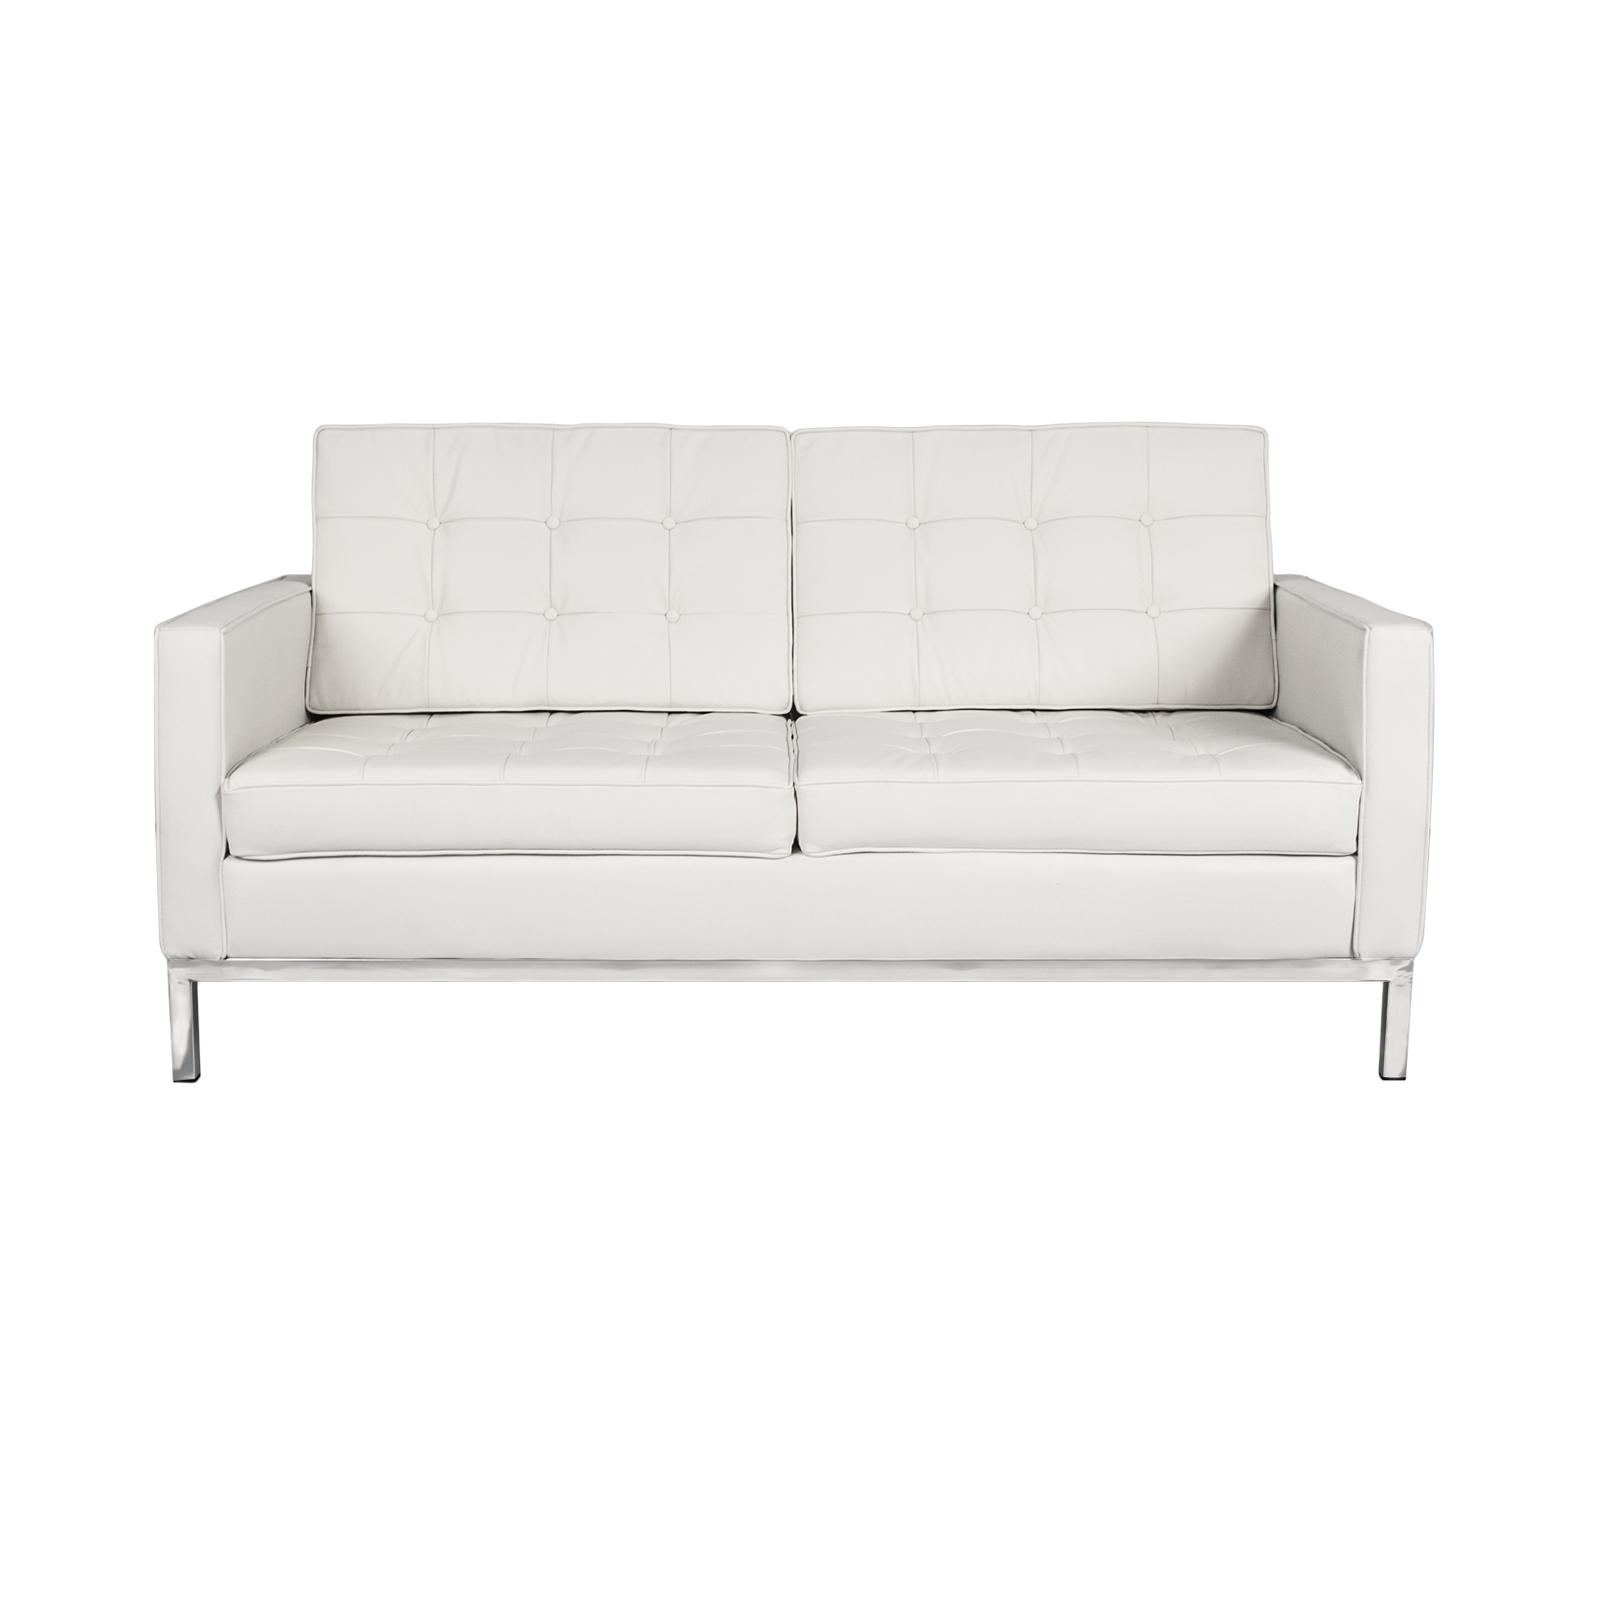 Florence Knoll Loveseat Rentals | Event Furniture Rental With Regard To Florence Sofas And Loveseats (View 14 of 20)